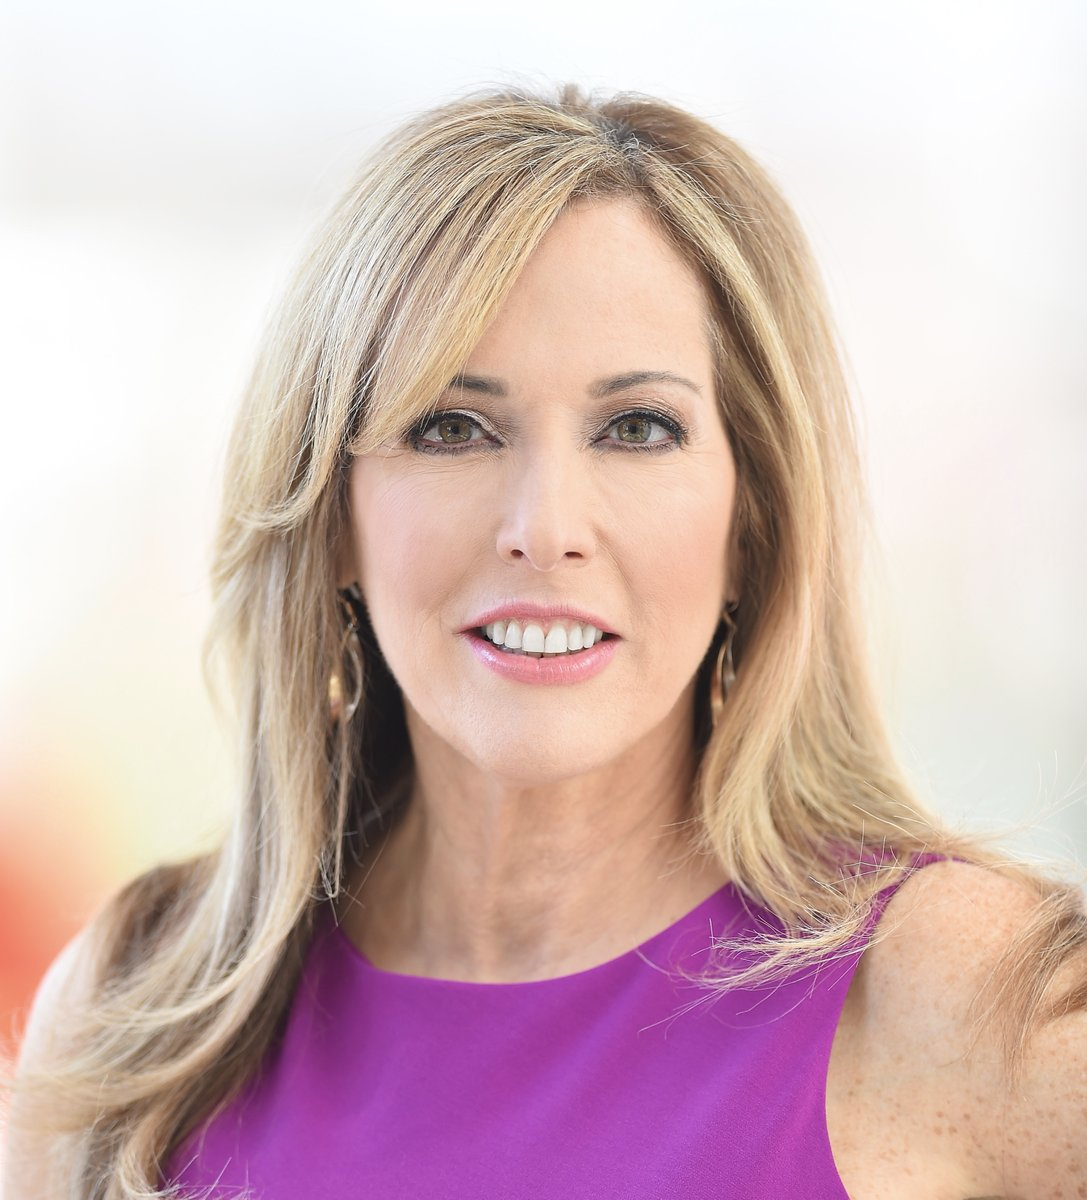 Episode 30 - @lindacohn - Talks about playing goalie on her high school hockey team, her 28 years at @espn and how she has navigated her career as a woman in sports television. Subscribe, Download and Listen! https://t.co/Mho7g1NTuC https://t.co/4VCPtewvwB